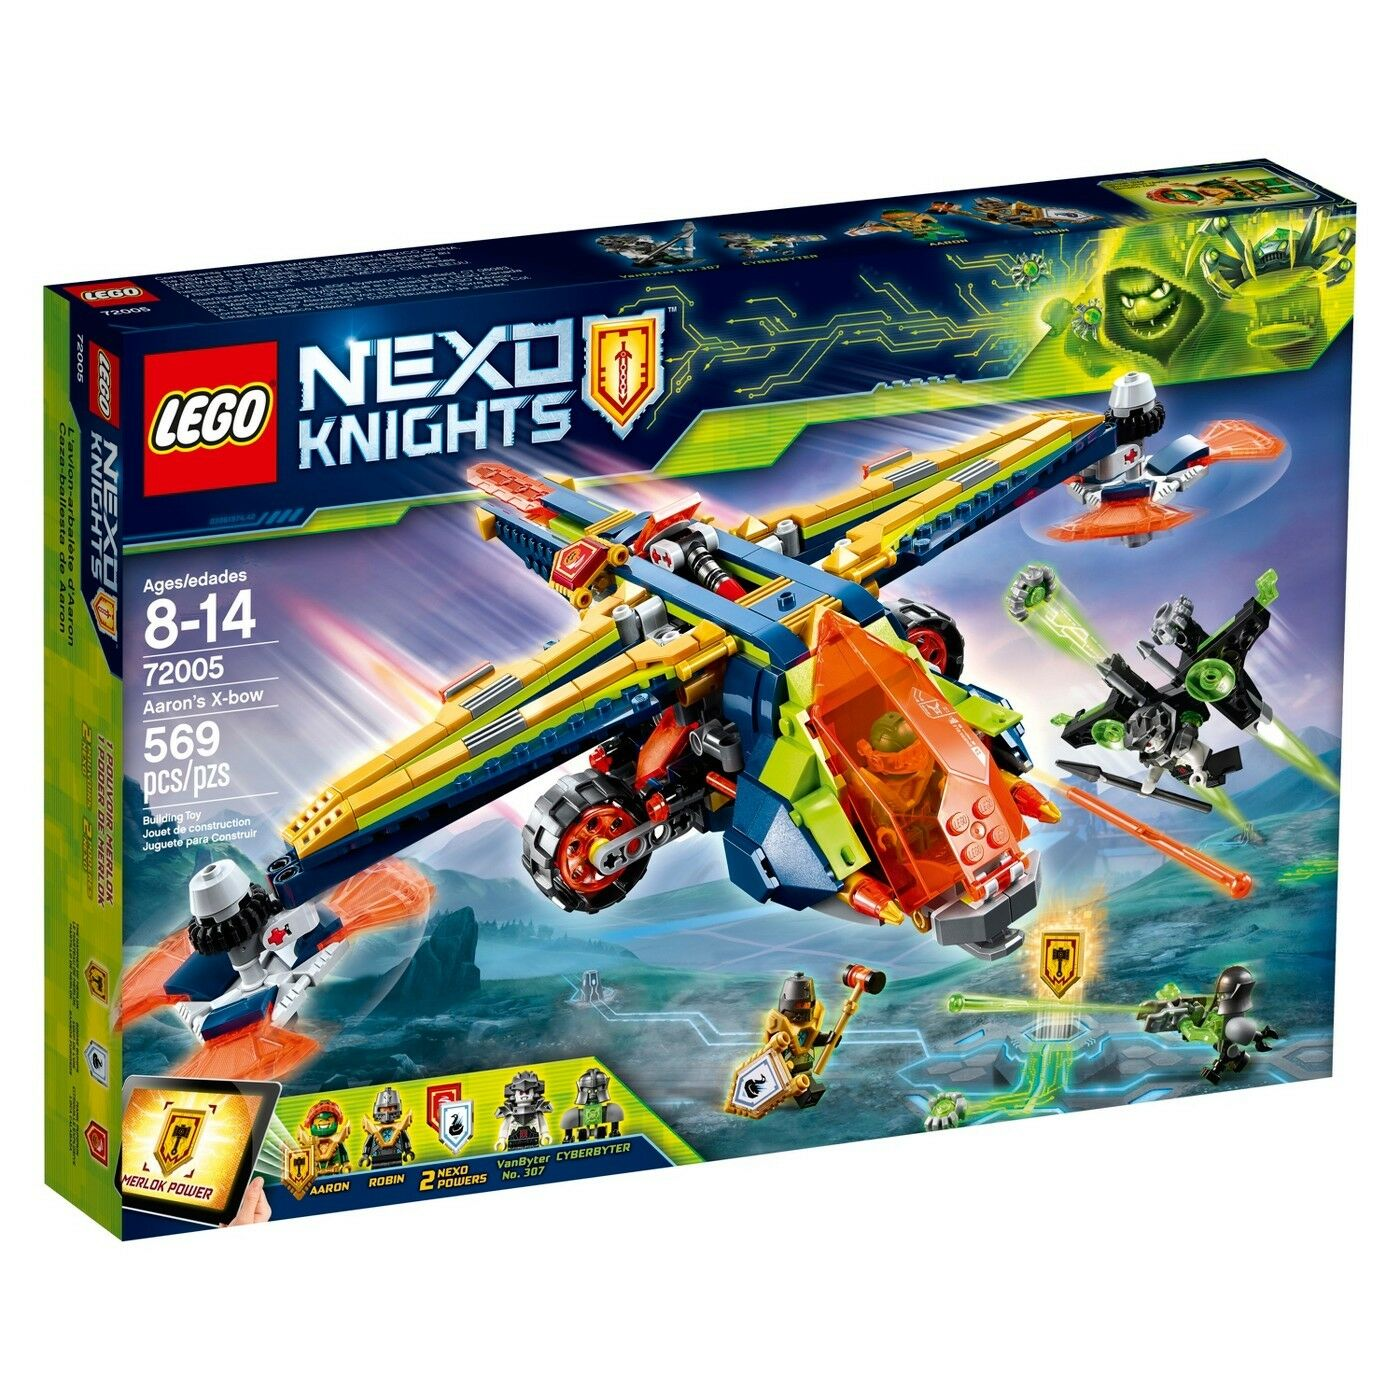 NEW Sealed LEGO NEXO KNIGHTS 72005 569 pc Ages 8-14 Aaron's X-Bow